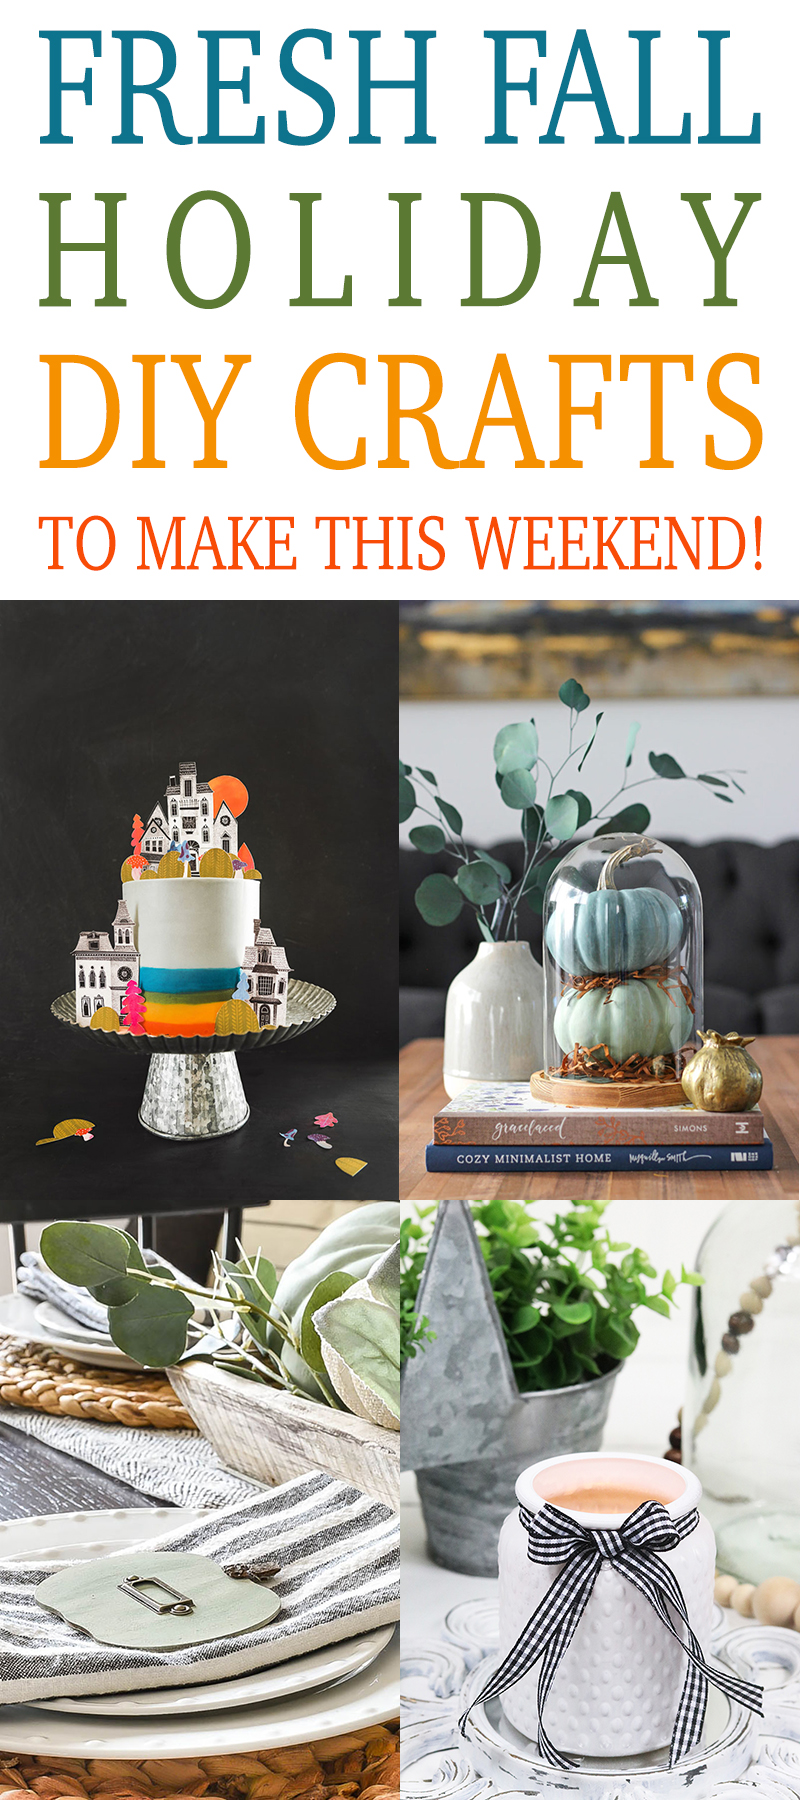 Time for some amazing Fresh Fall Holiday DIY Crafts To Make This Weekend! Tons of creations with Farmhouse Style and some with Trendy Fabulousness!